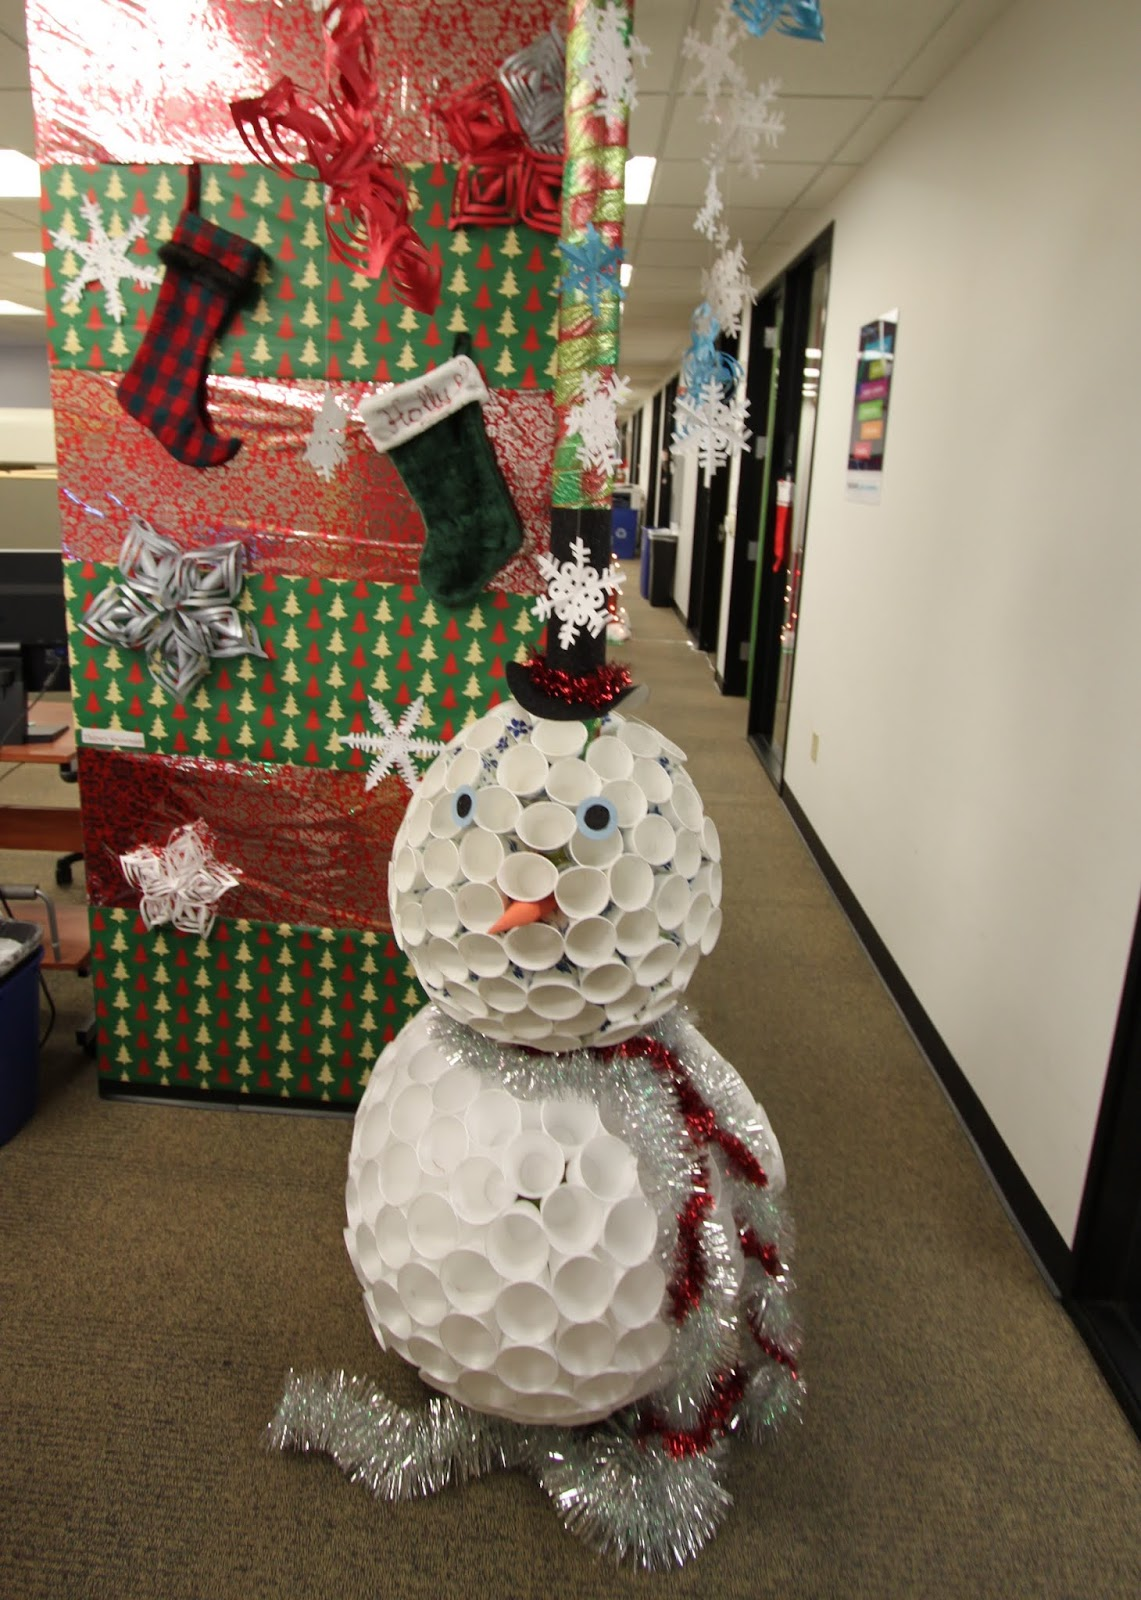 Wonderful Some Companies Have Office Christmas Decorating Contests To Help Employees Get Into The Holiday Spirit When You Consider Door Decorating Ideas, Try To Incorporate Your Department With The Theme Materials Found Around Your Work